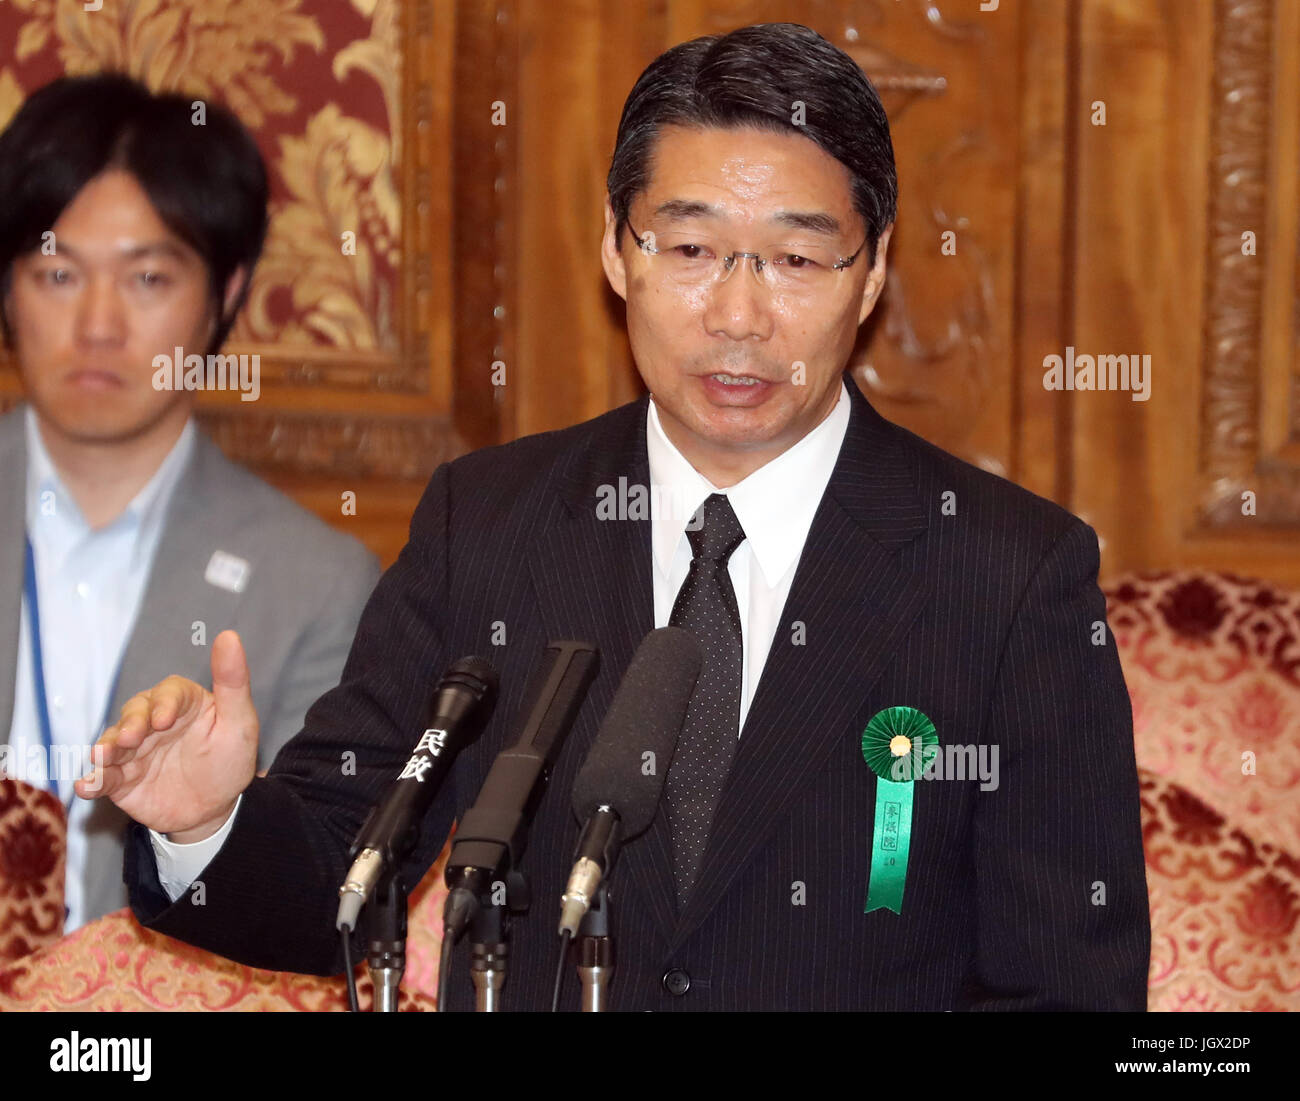 Tokyo, Japan. 10th July, 2017. Former vice Education Minister Kihei Maekawa speaks at the Upper House's committee - Stock Image